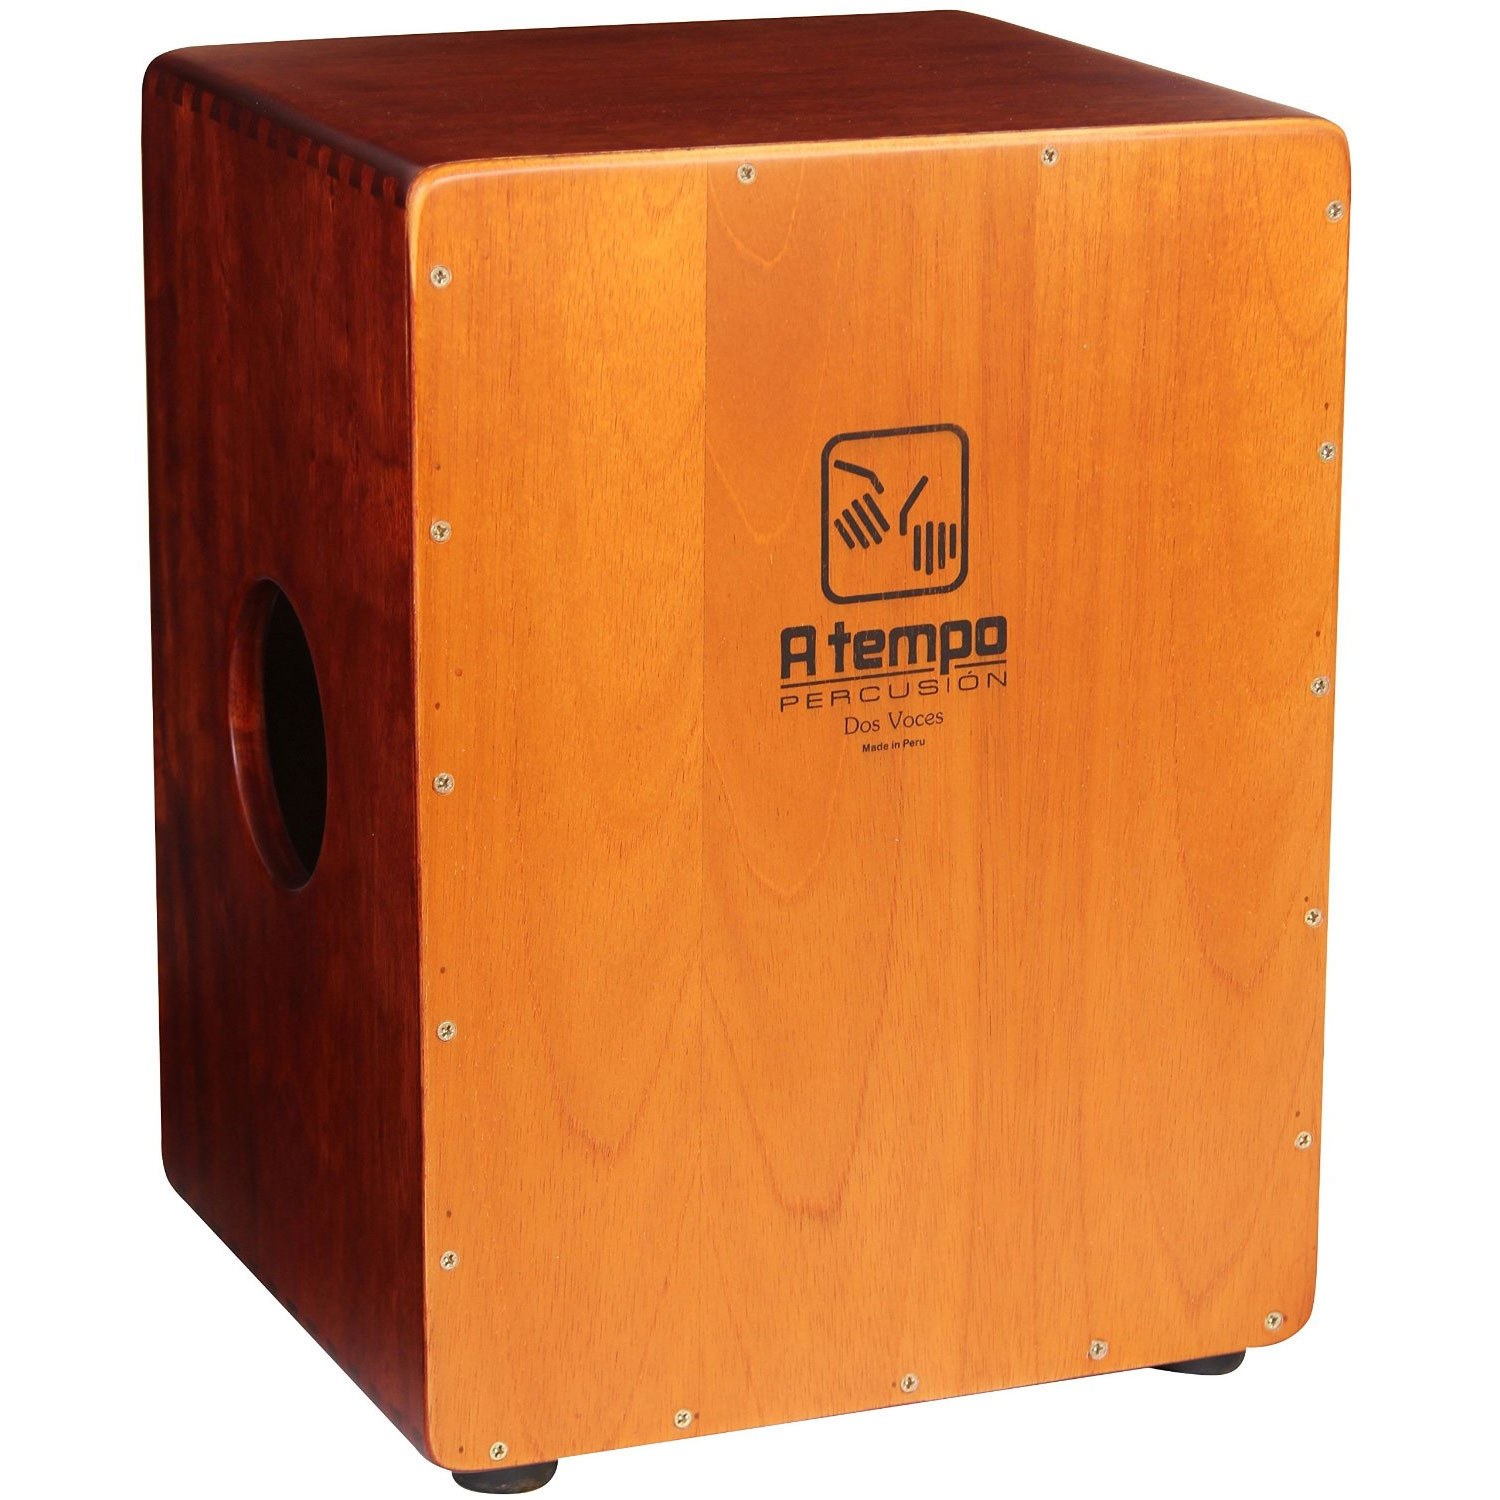 A Tempo Percussion Dos Voces (Two Voices) Cajon with FREE Bag